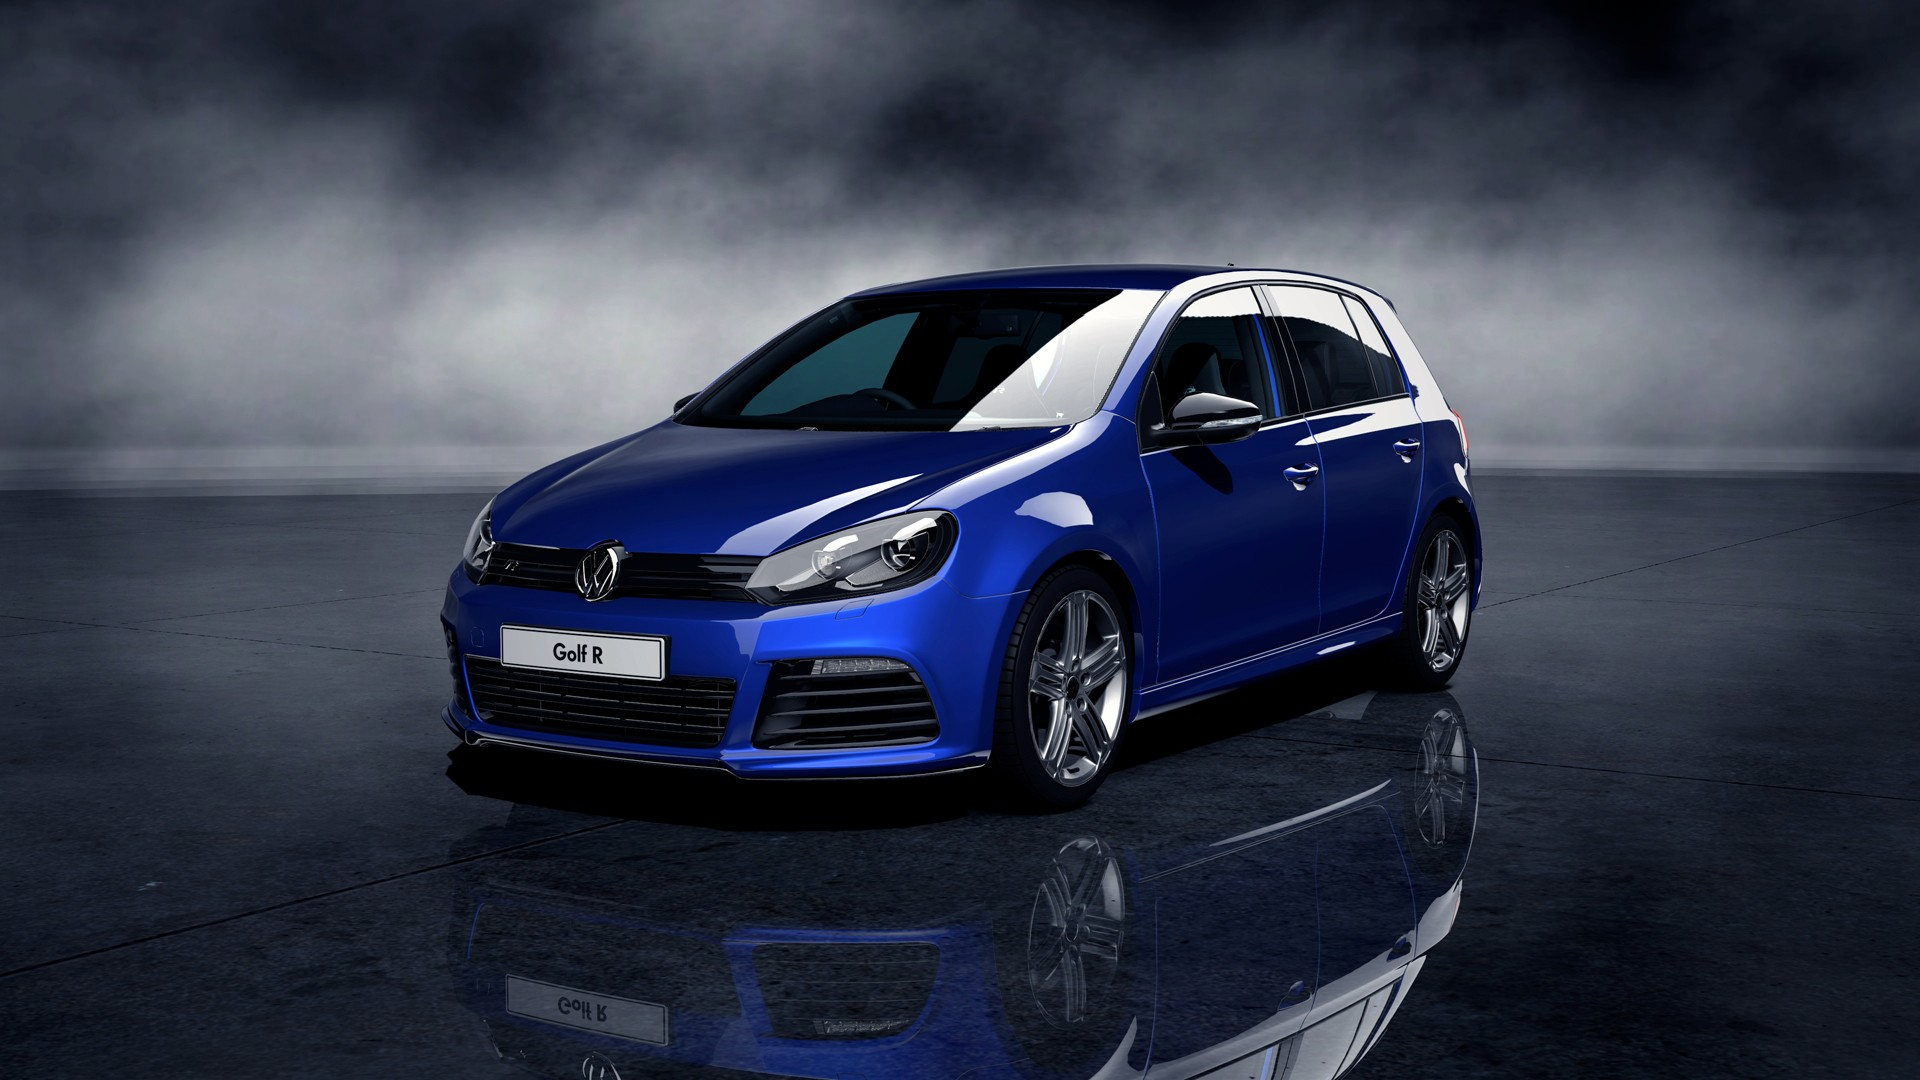 Golf R Wallpaper 1920x1080